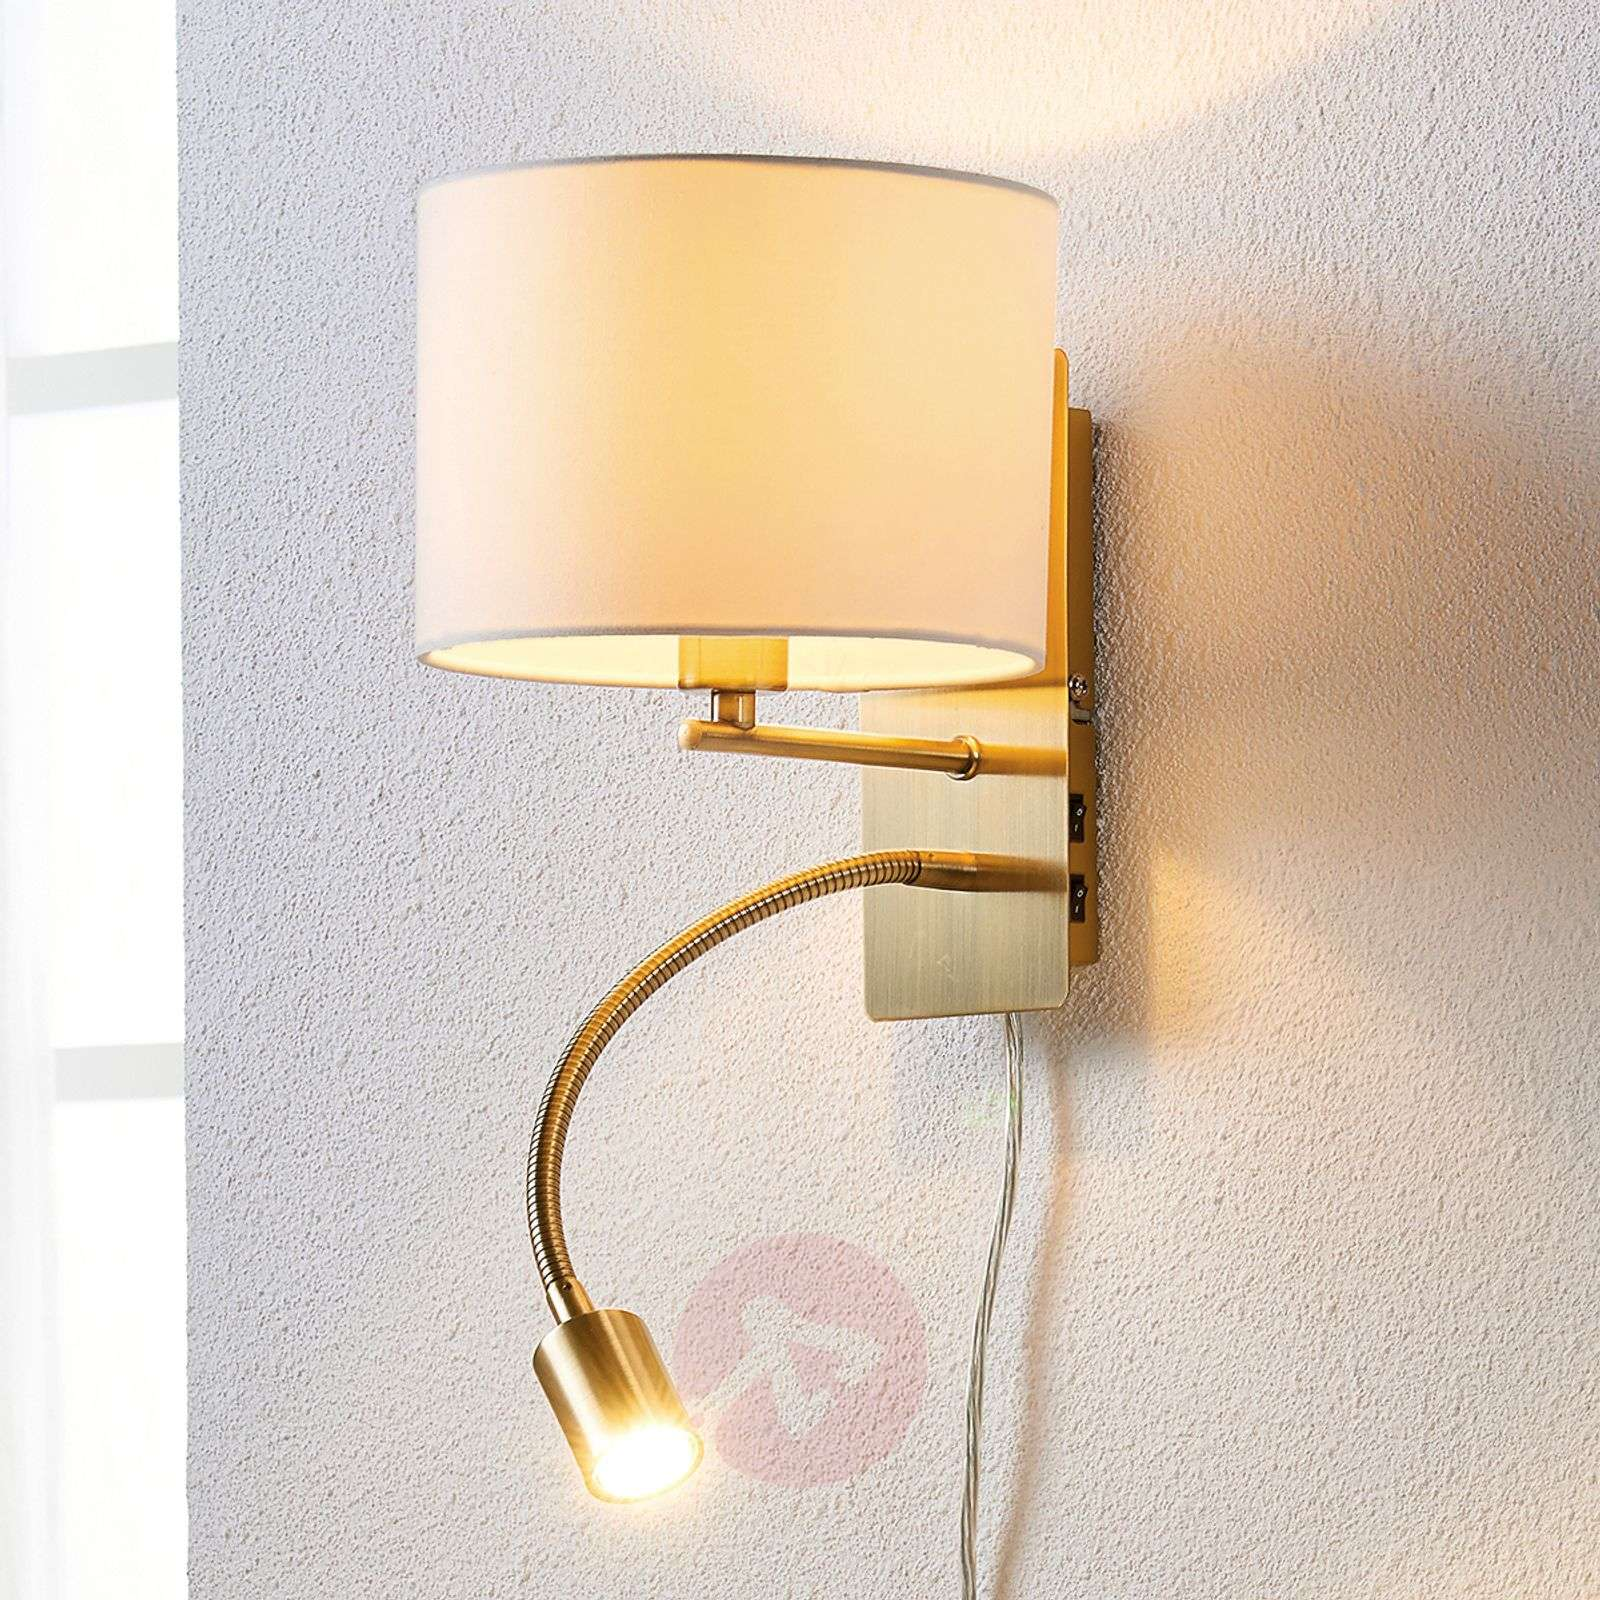 Fabric wall light florens with led flexible arm lights fabric wall light florens with led flexible arm 9620922 03 mozeypictures Choice Image